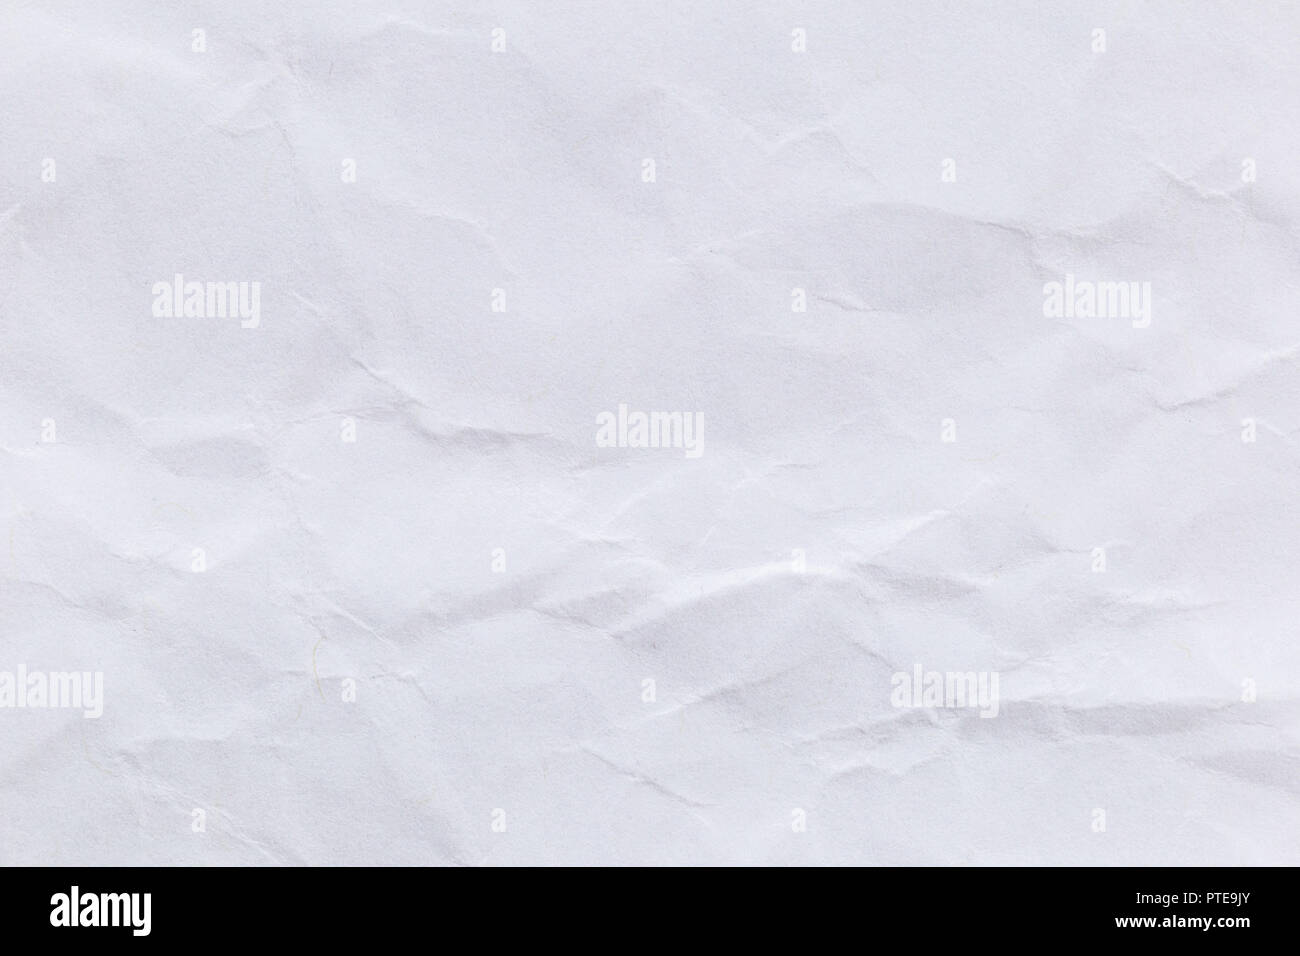 crumpled white paper background for business communication and